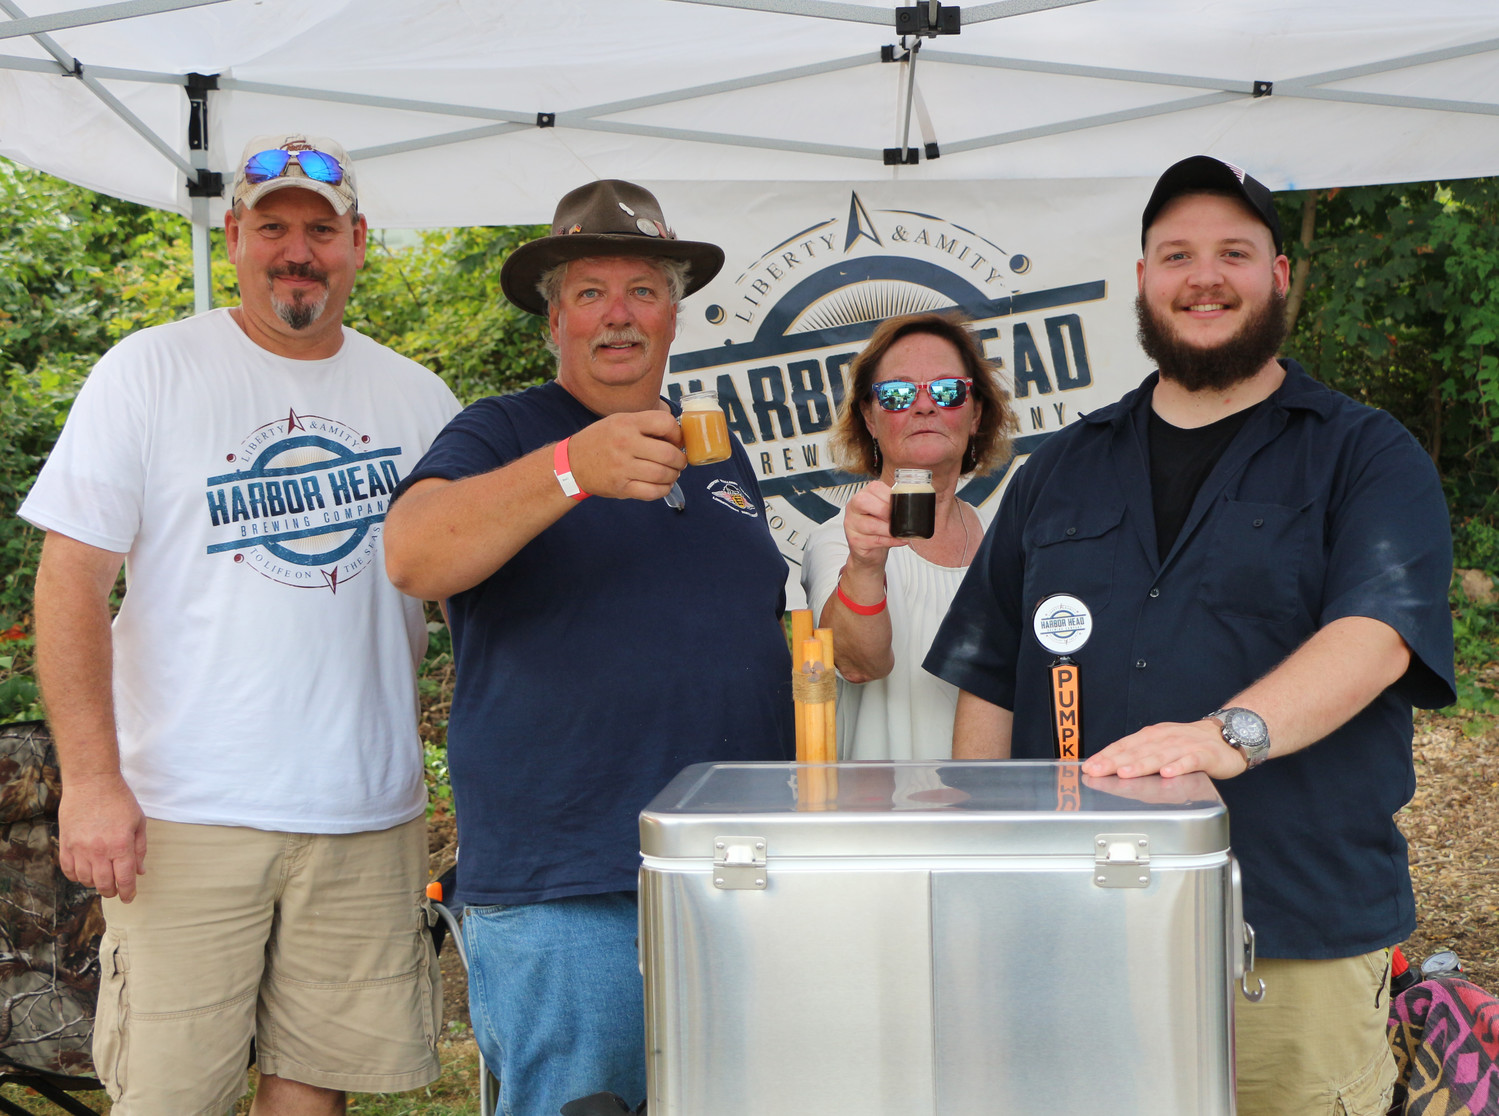 Joining in the festivities were, from left, Glenn Schug, John Cools, Kathy Schatz and Kyle Schug enjoy a sample of beer from the Harbor Head Brewery.  Harbor Head makes a variety of different flavored brews, including mango alopeno and pumpkin.